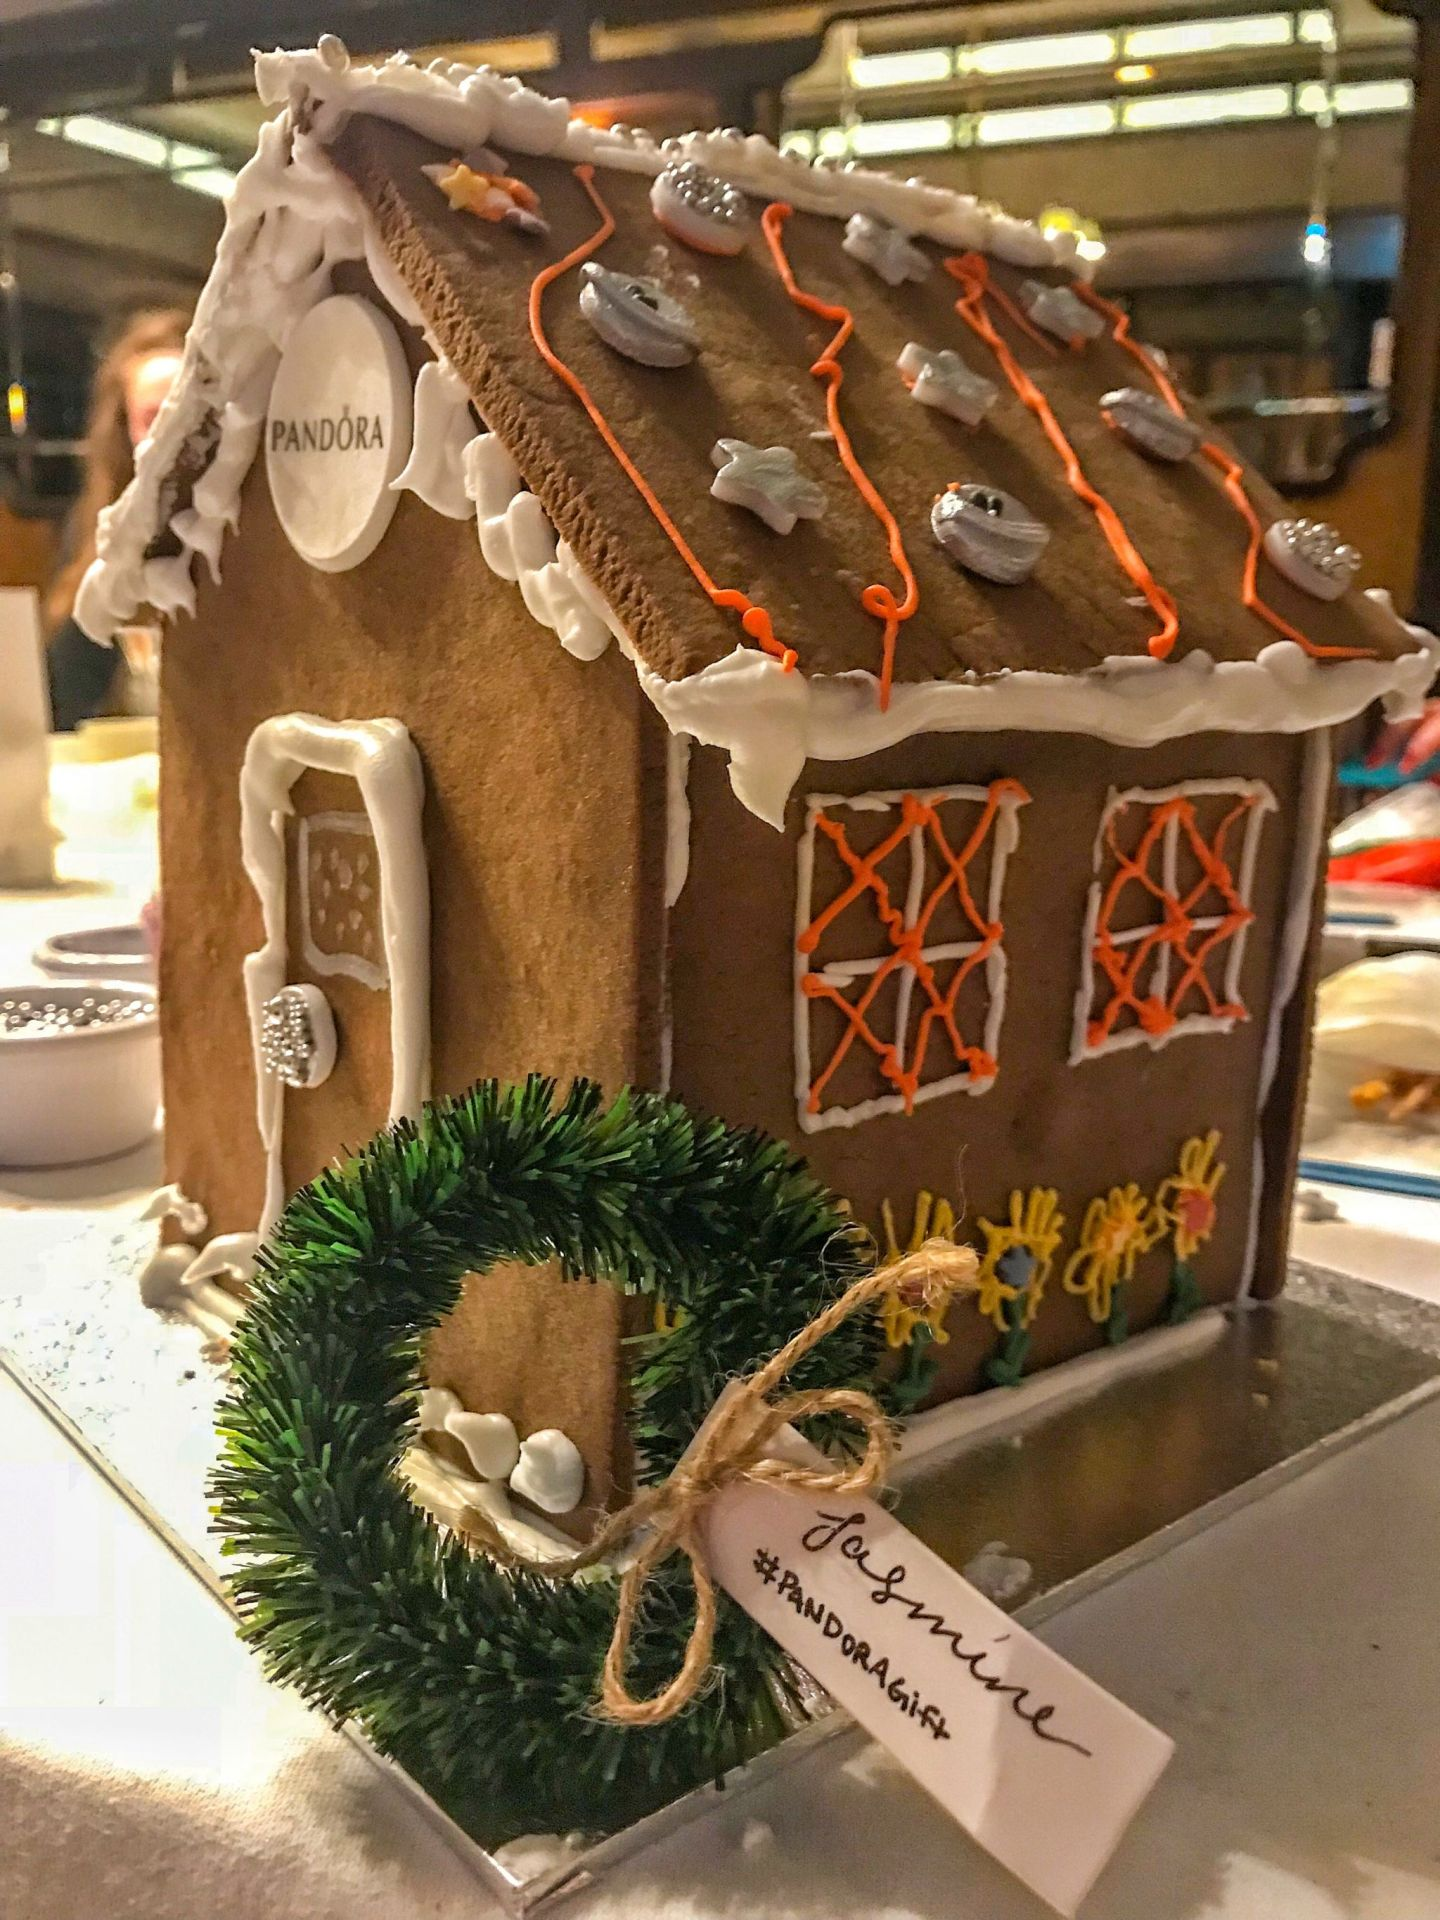 Charming Festive Gingerbread House Event with PANDORA